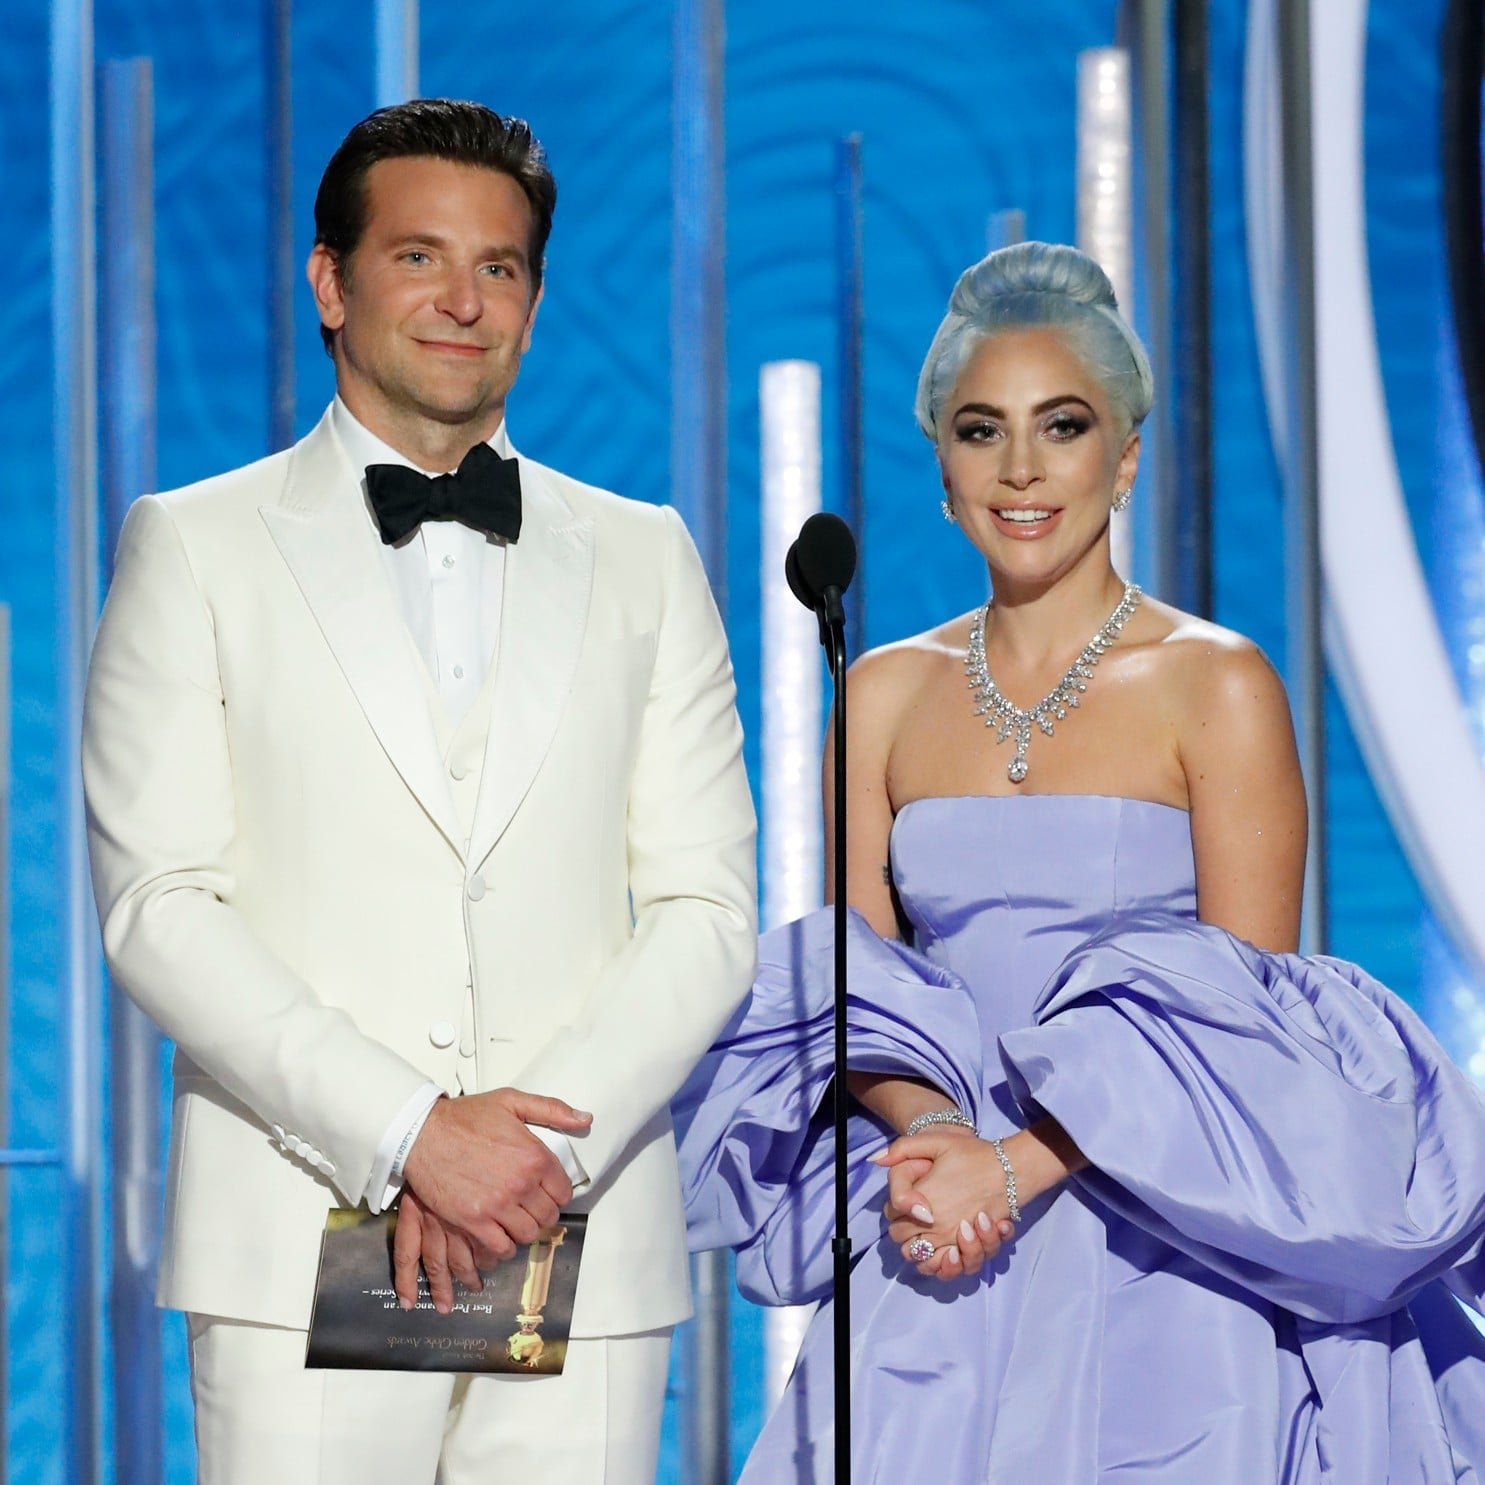 tmp_ZIj0mn_5584b91214b2a1be_Lady-Gaga-Thanks-Bradley-Cooper-After-2019-Golden-Globes.jpg